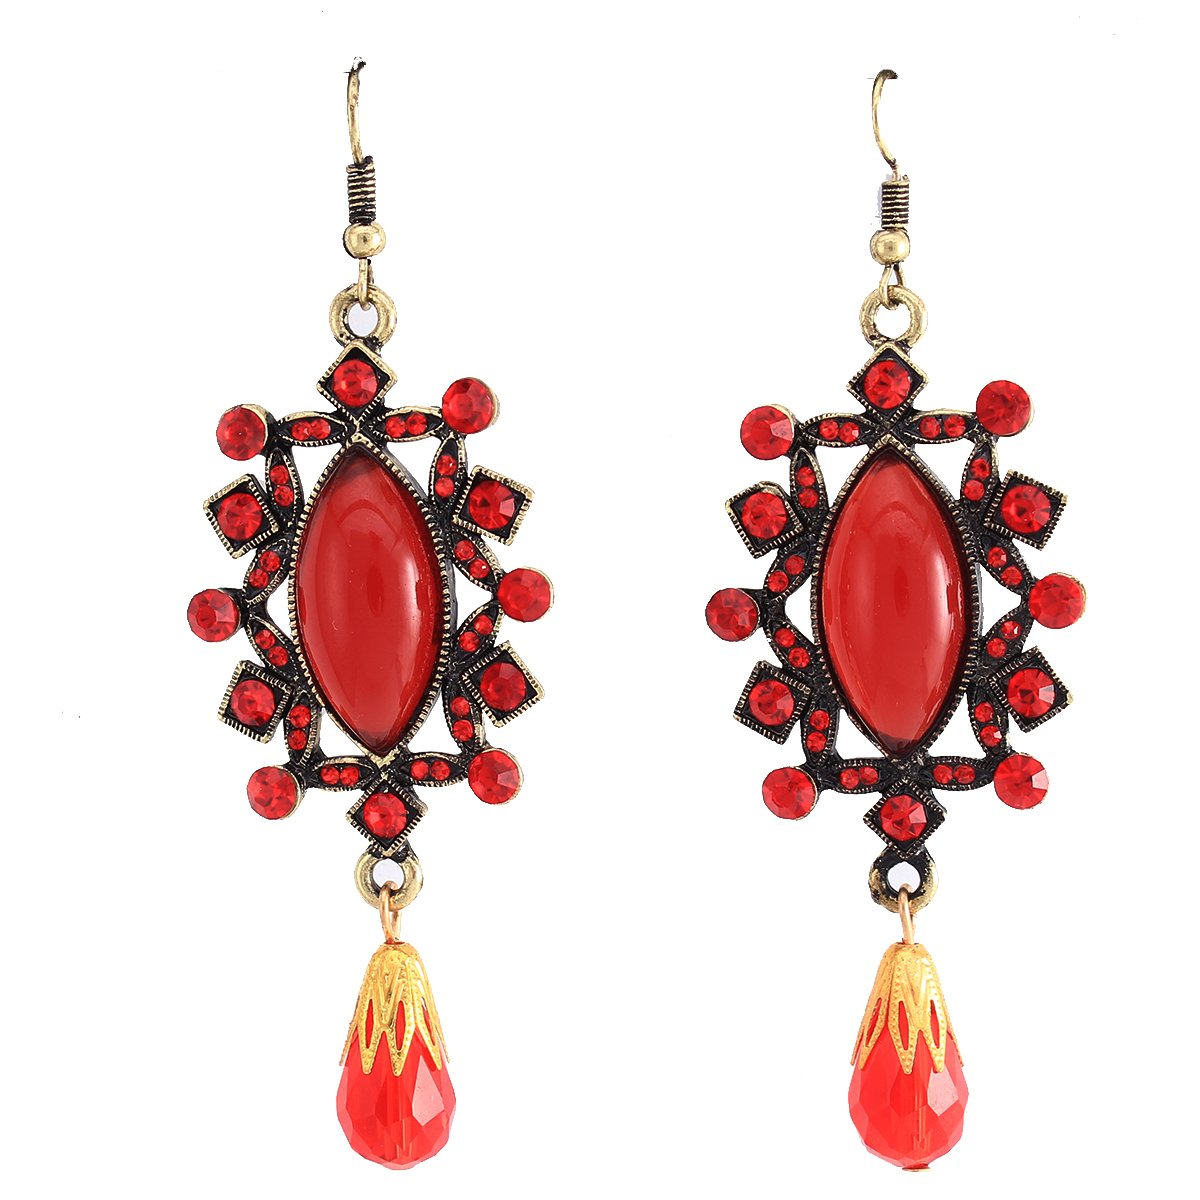 Stuffwhoesale Vintage Oval Ruby Crown with Drop Earring Jewelry Set by Stuffwholesale (Image #5)